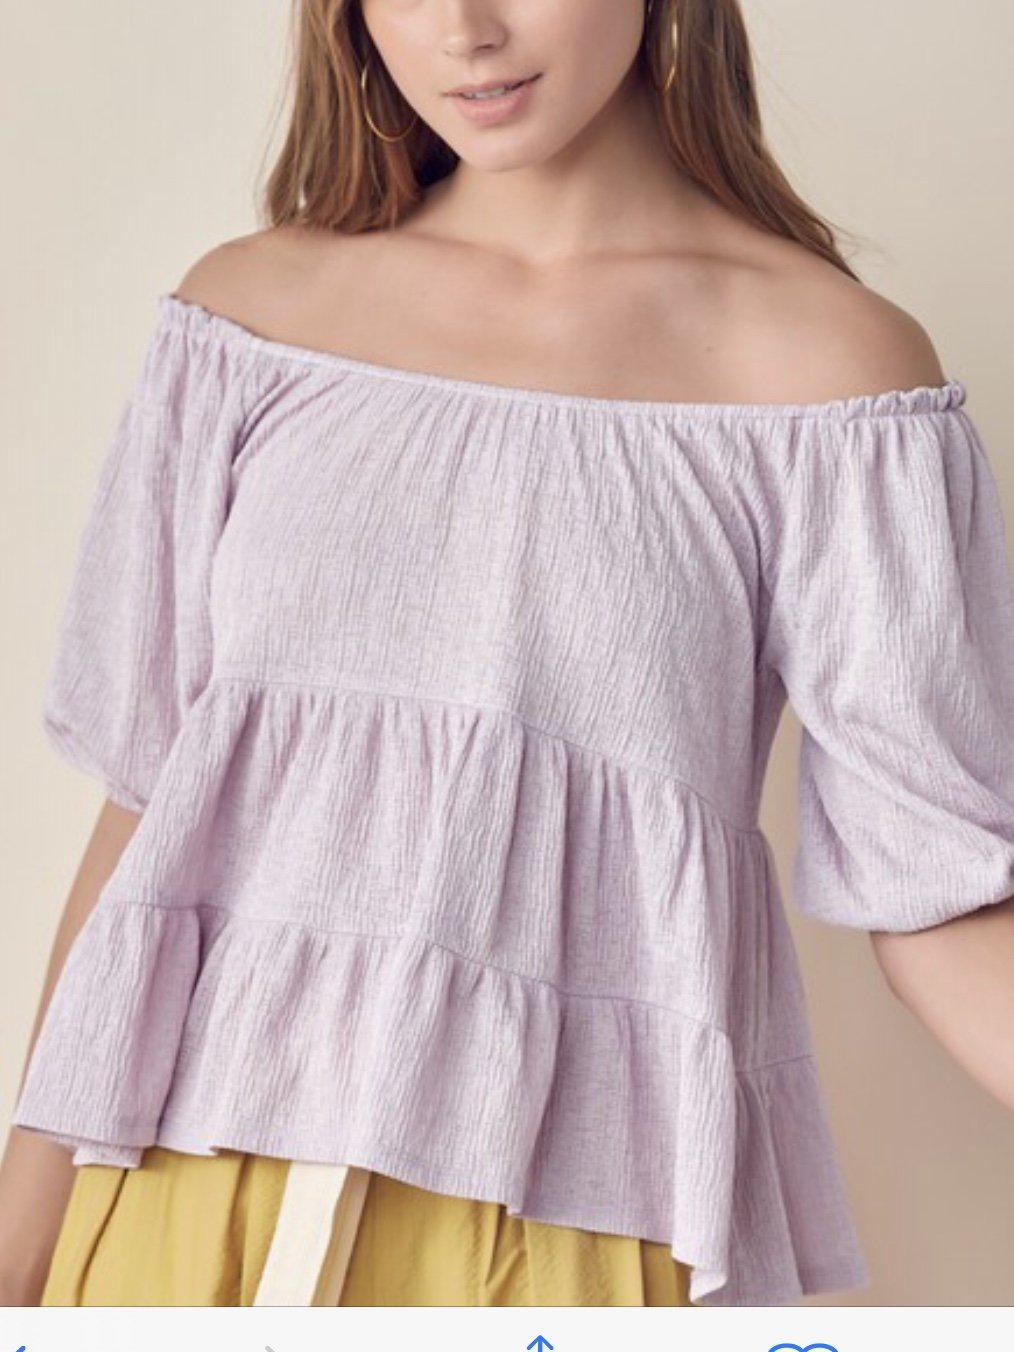 FRAGRANT AIR TOP-Women's TOP-New Arrivals-Runway Seven